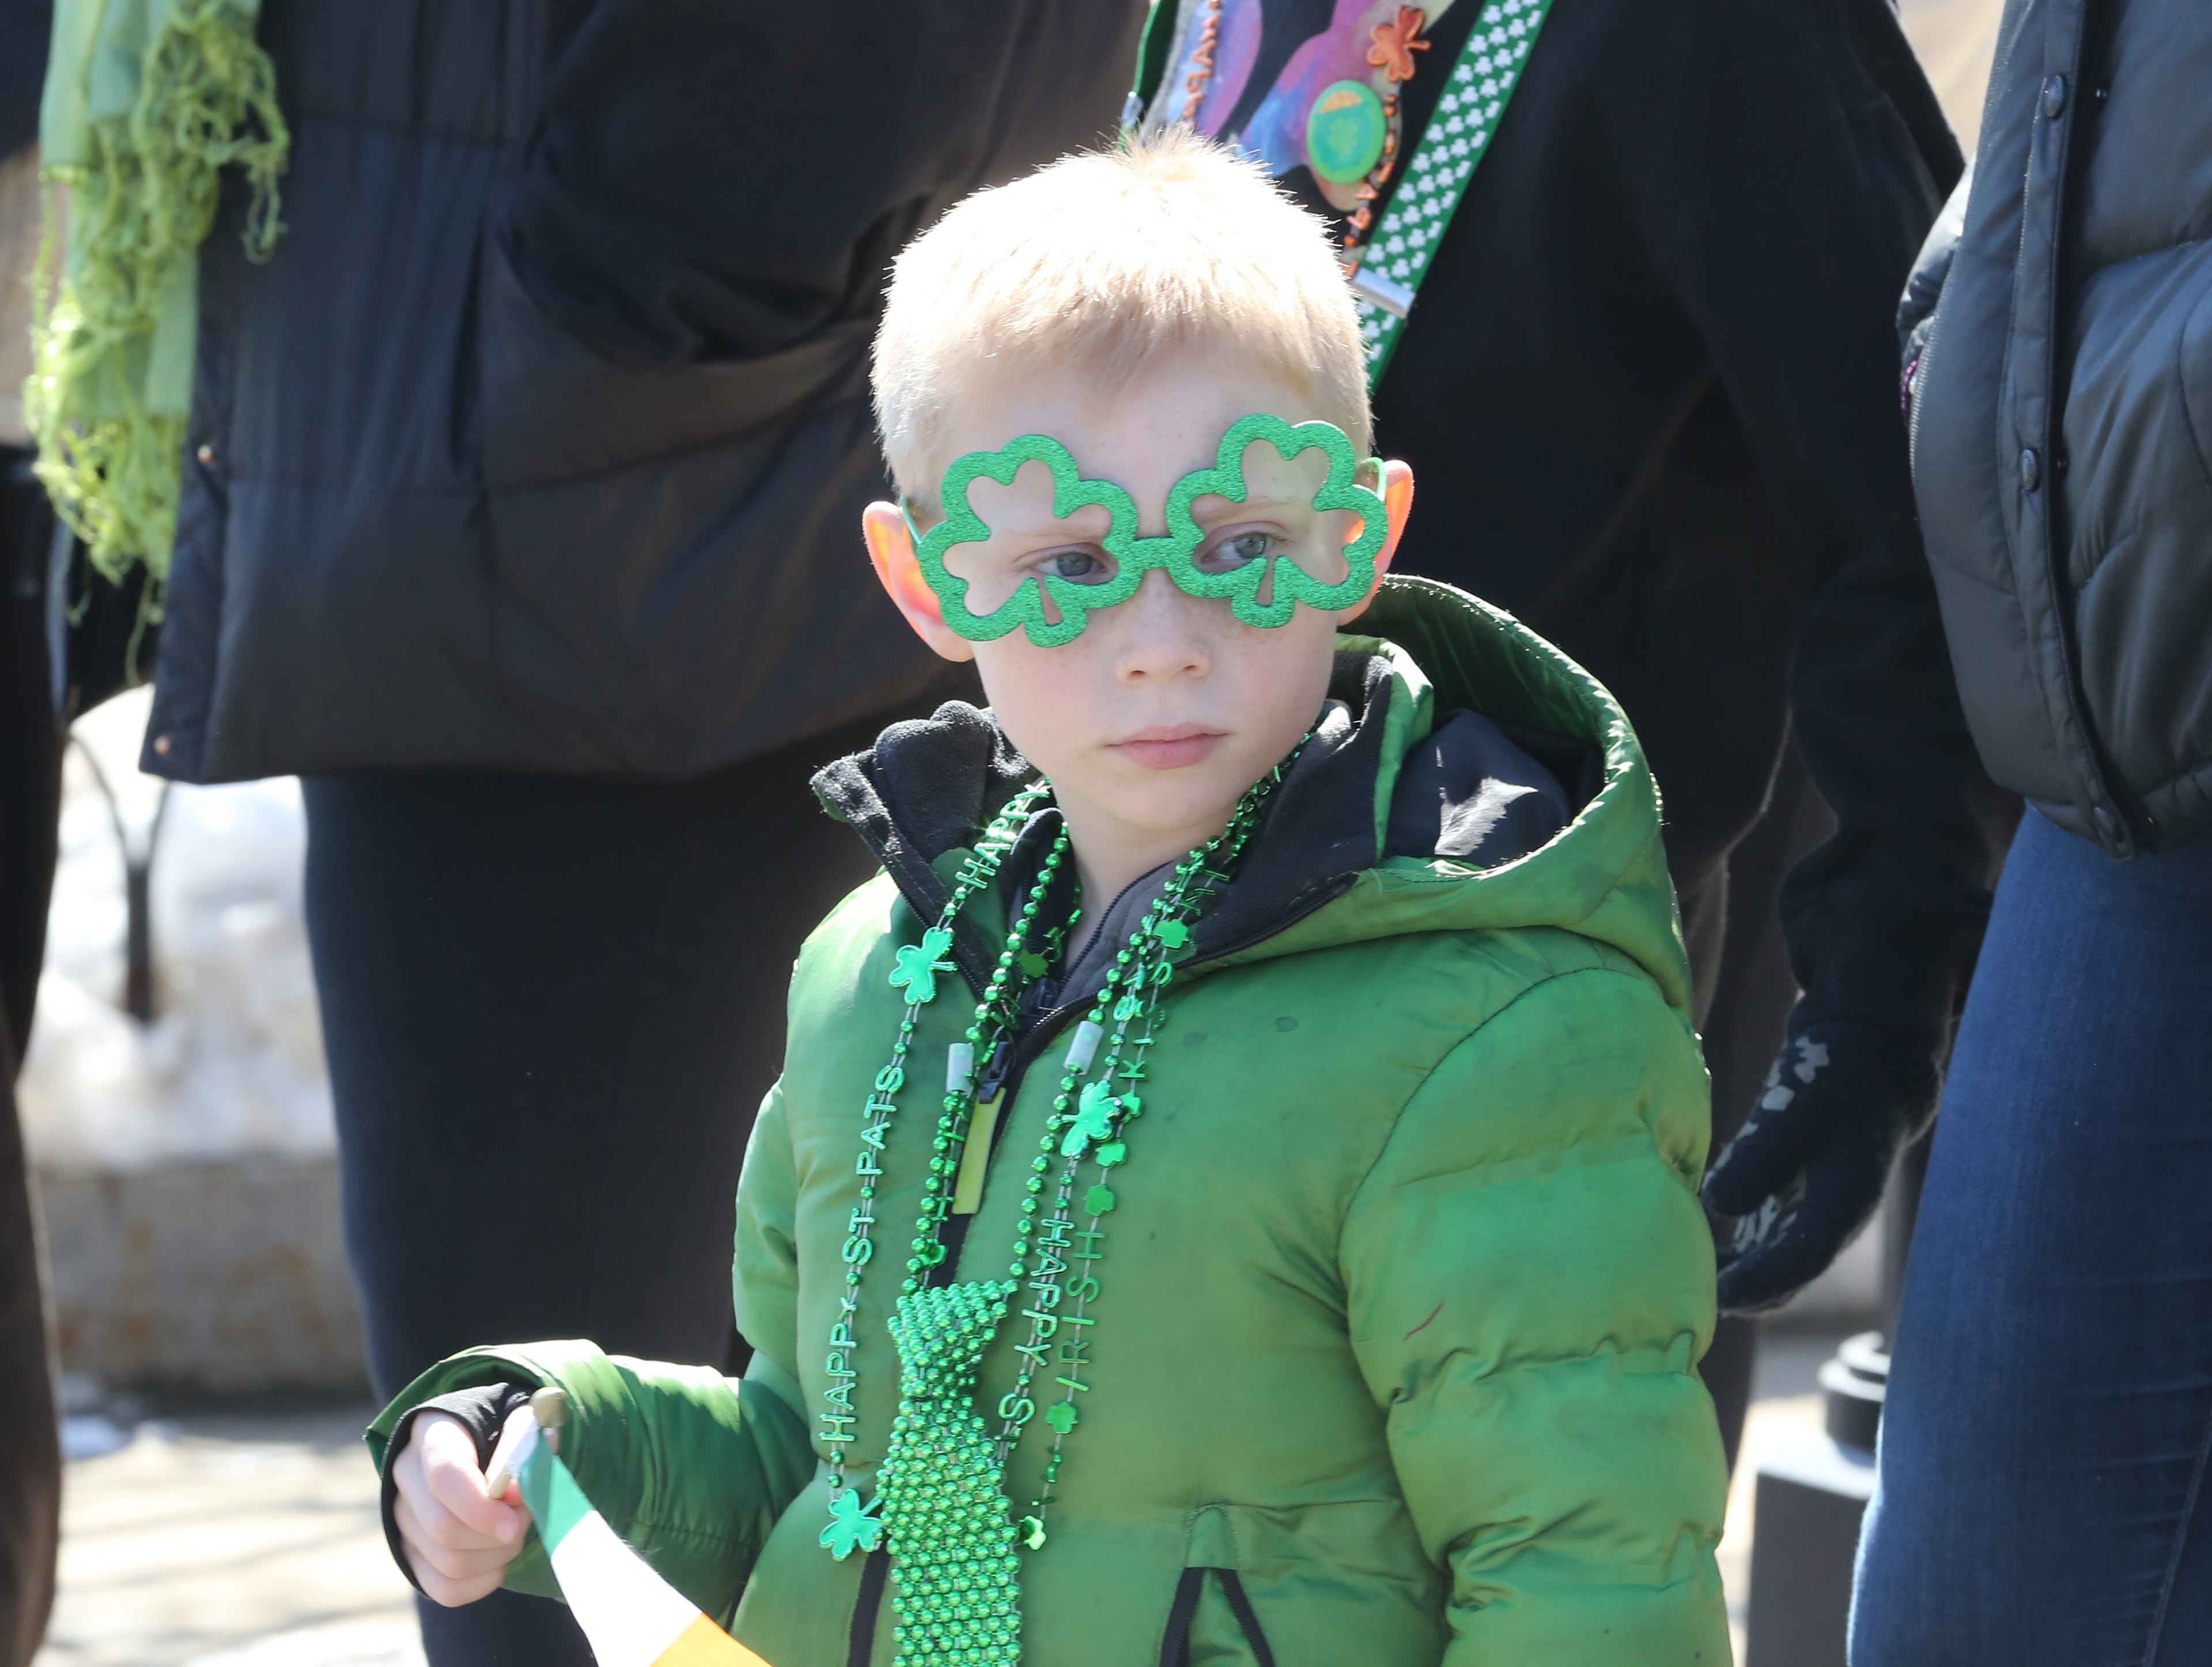 Ryan Bierfeldt, 6, dresses in green to watch the 22nd annual White Plains St. Patrick's Day parade along Mamaroneck Avenue in White Plains March 9, 2019.